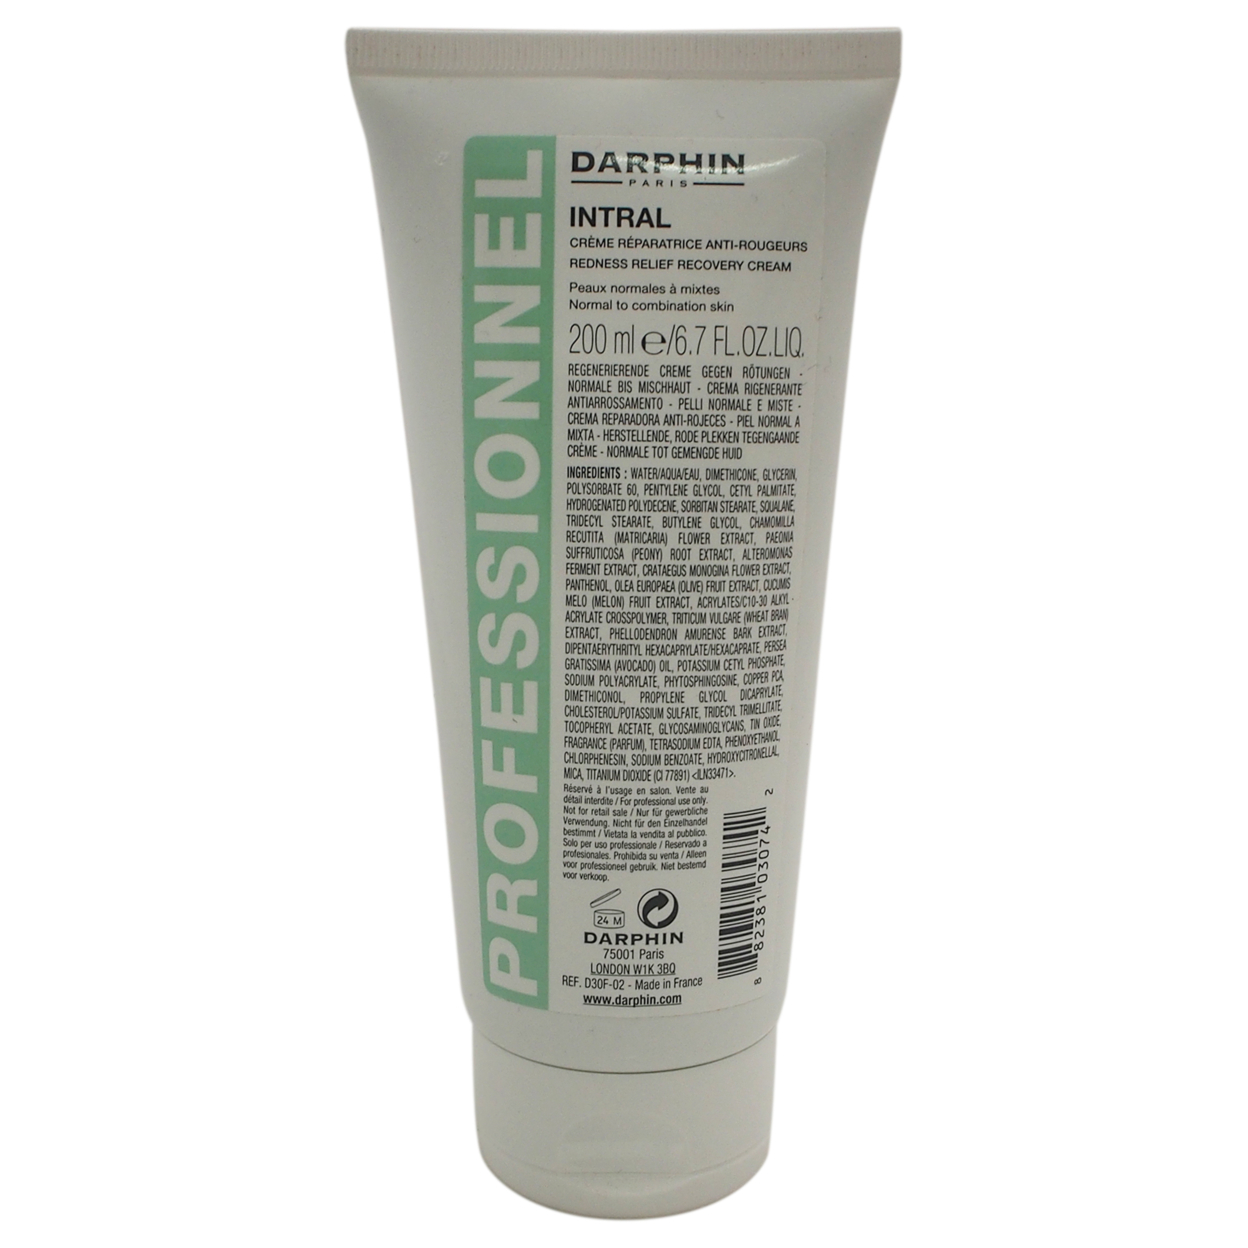 Intral Redness Relief Recovery Cream By Darphin For Women 6.7 Oz Cream